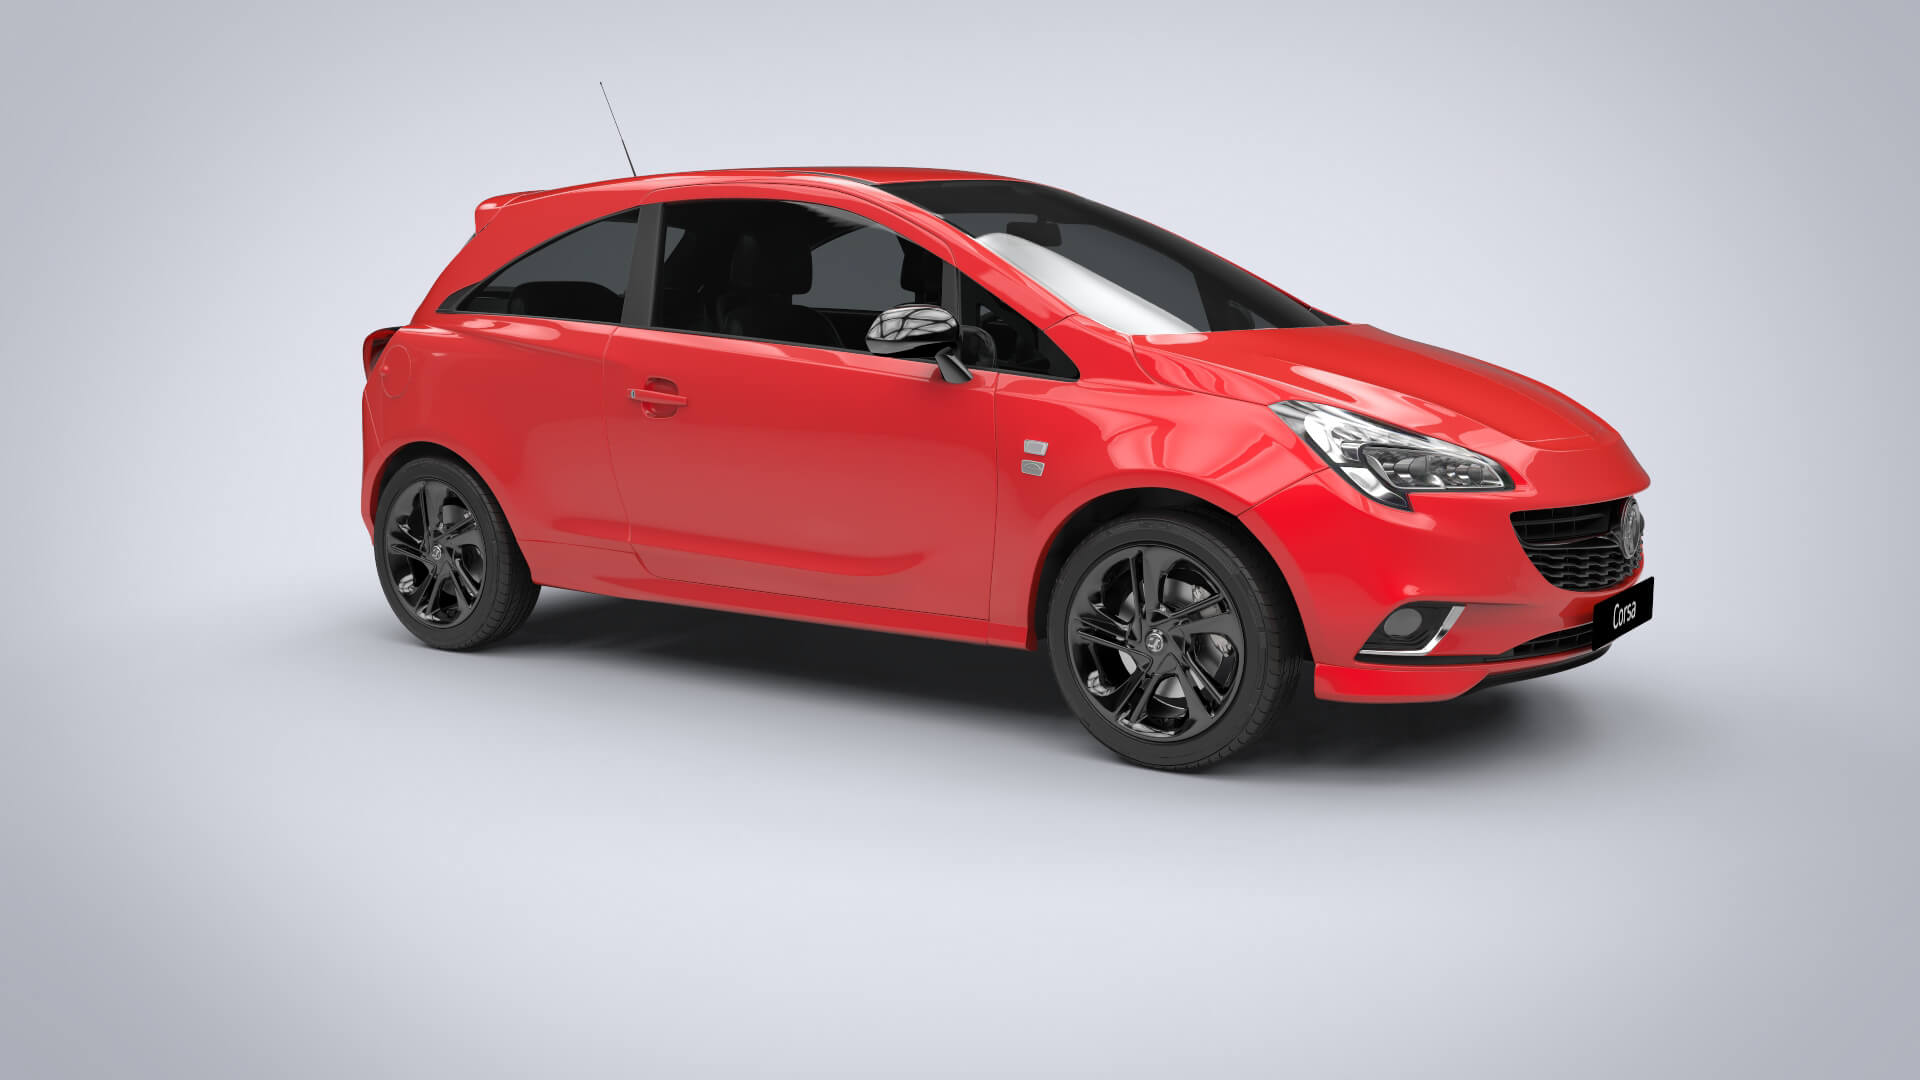 New Corsa Cannock Brindley Vauxhall Small Cars Extra Dark Window Tint Shown For Visualisation Purposes